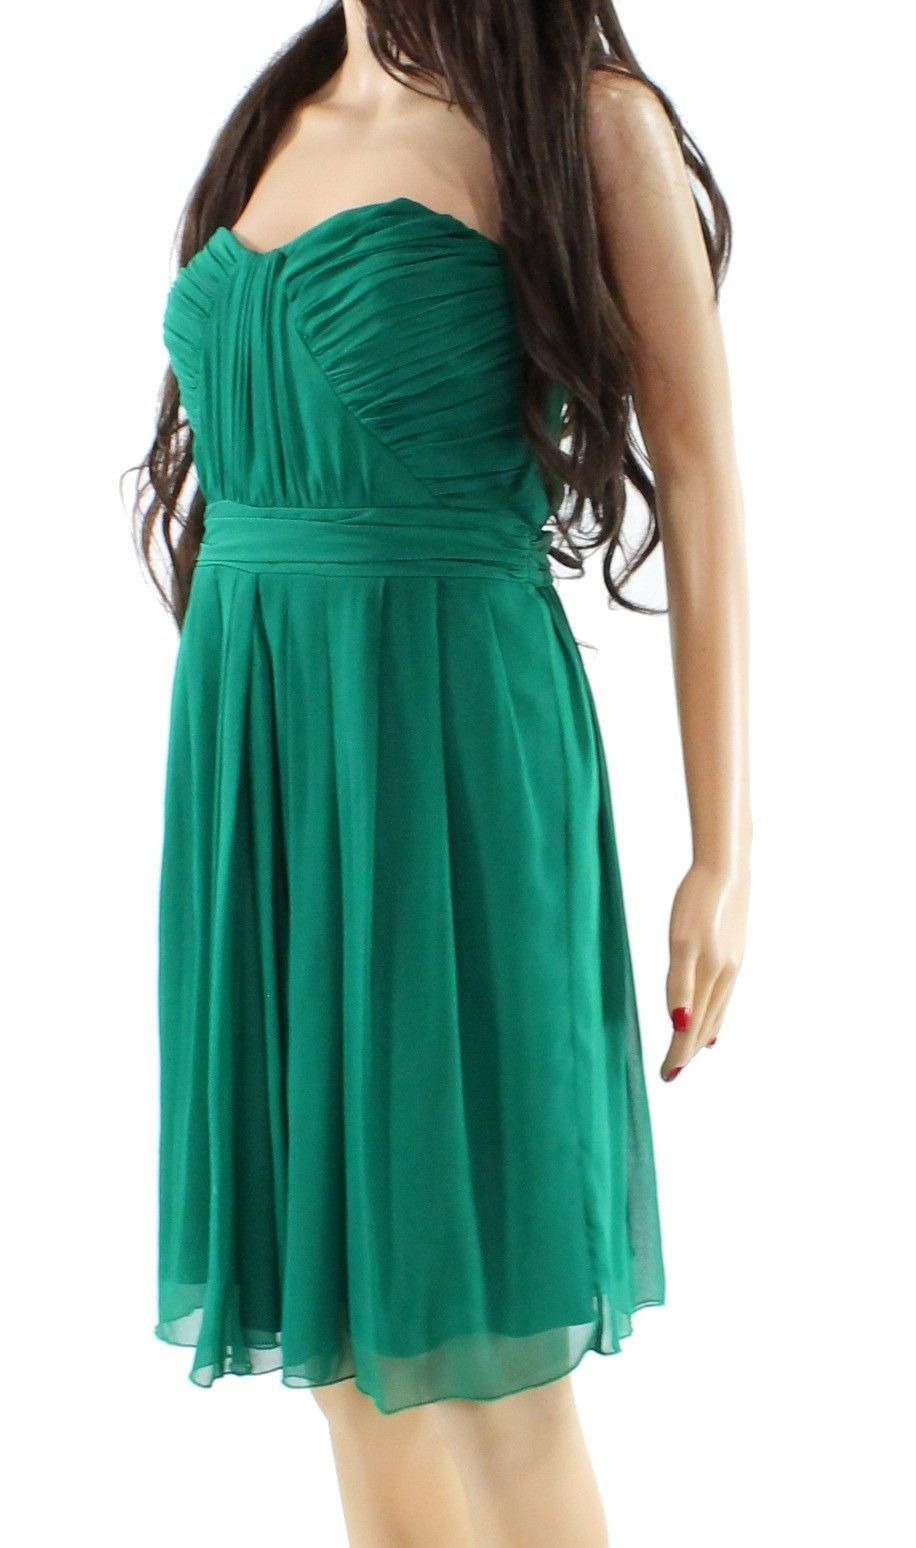 317d414a51f90 Badgley Mischka Green Women's Size 14 Pleated Empire Waist Dress ...